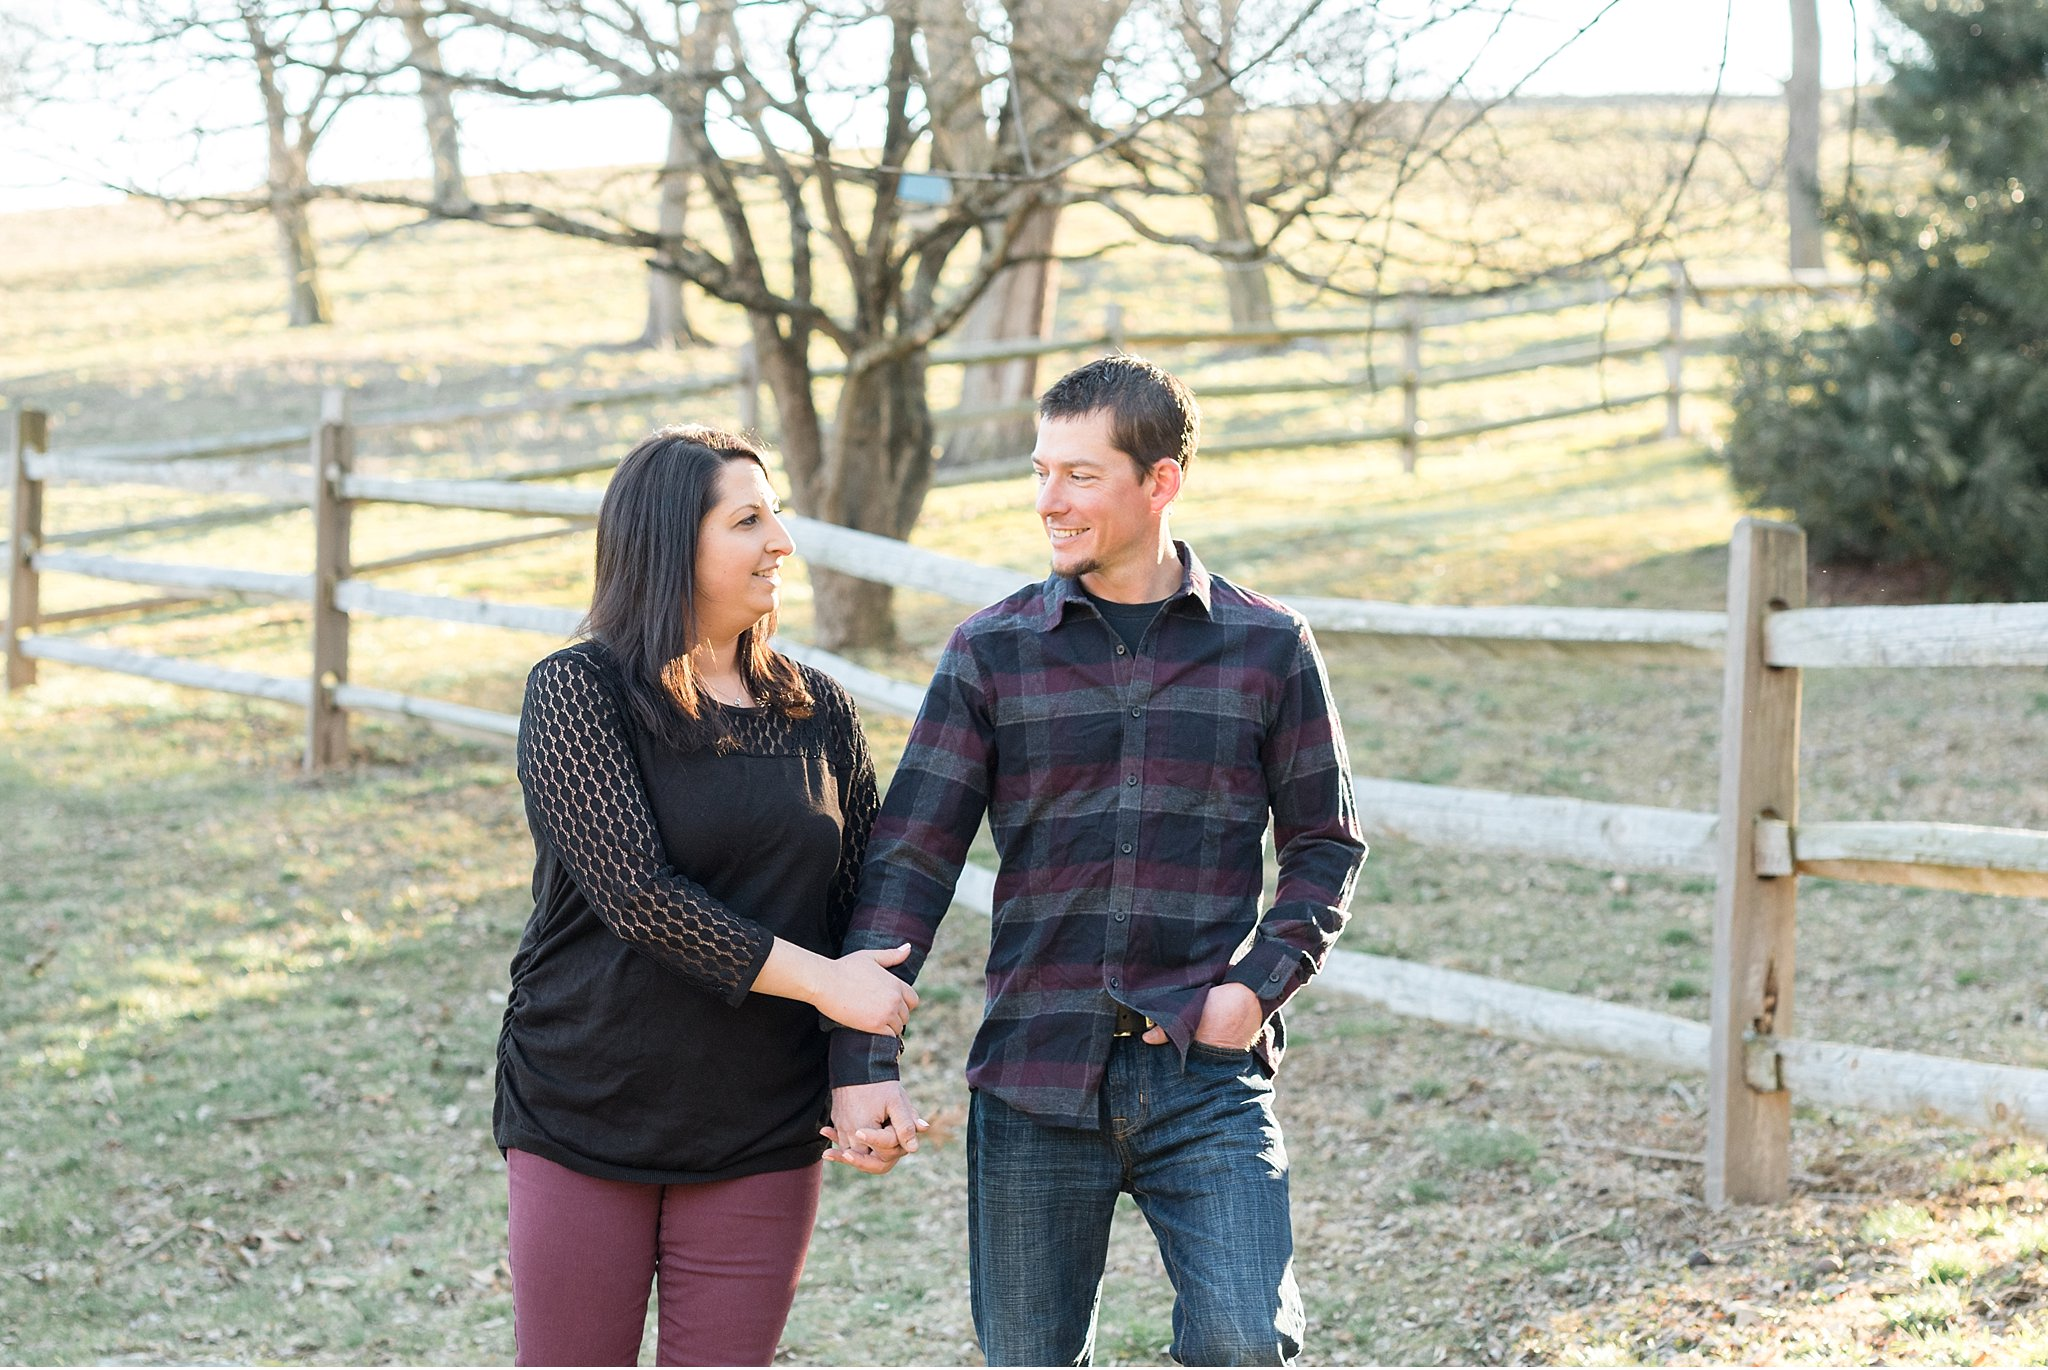 New Providence orchard Lancaster County Wedding and engagement photographer photo_0940.jpg